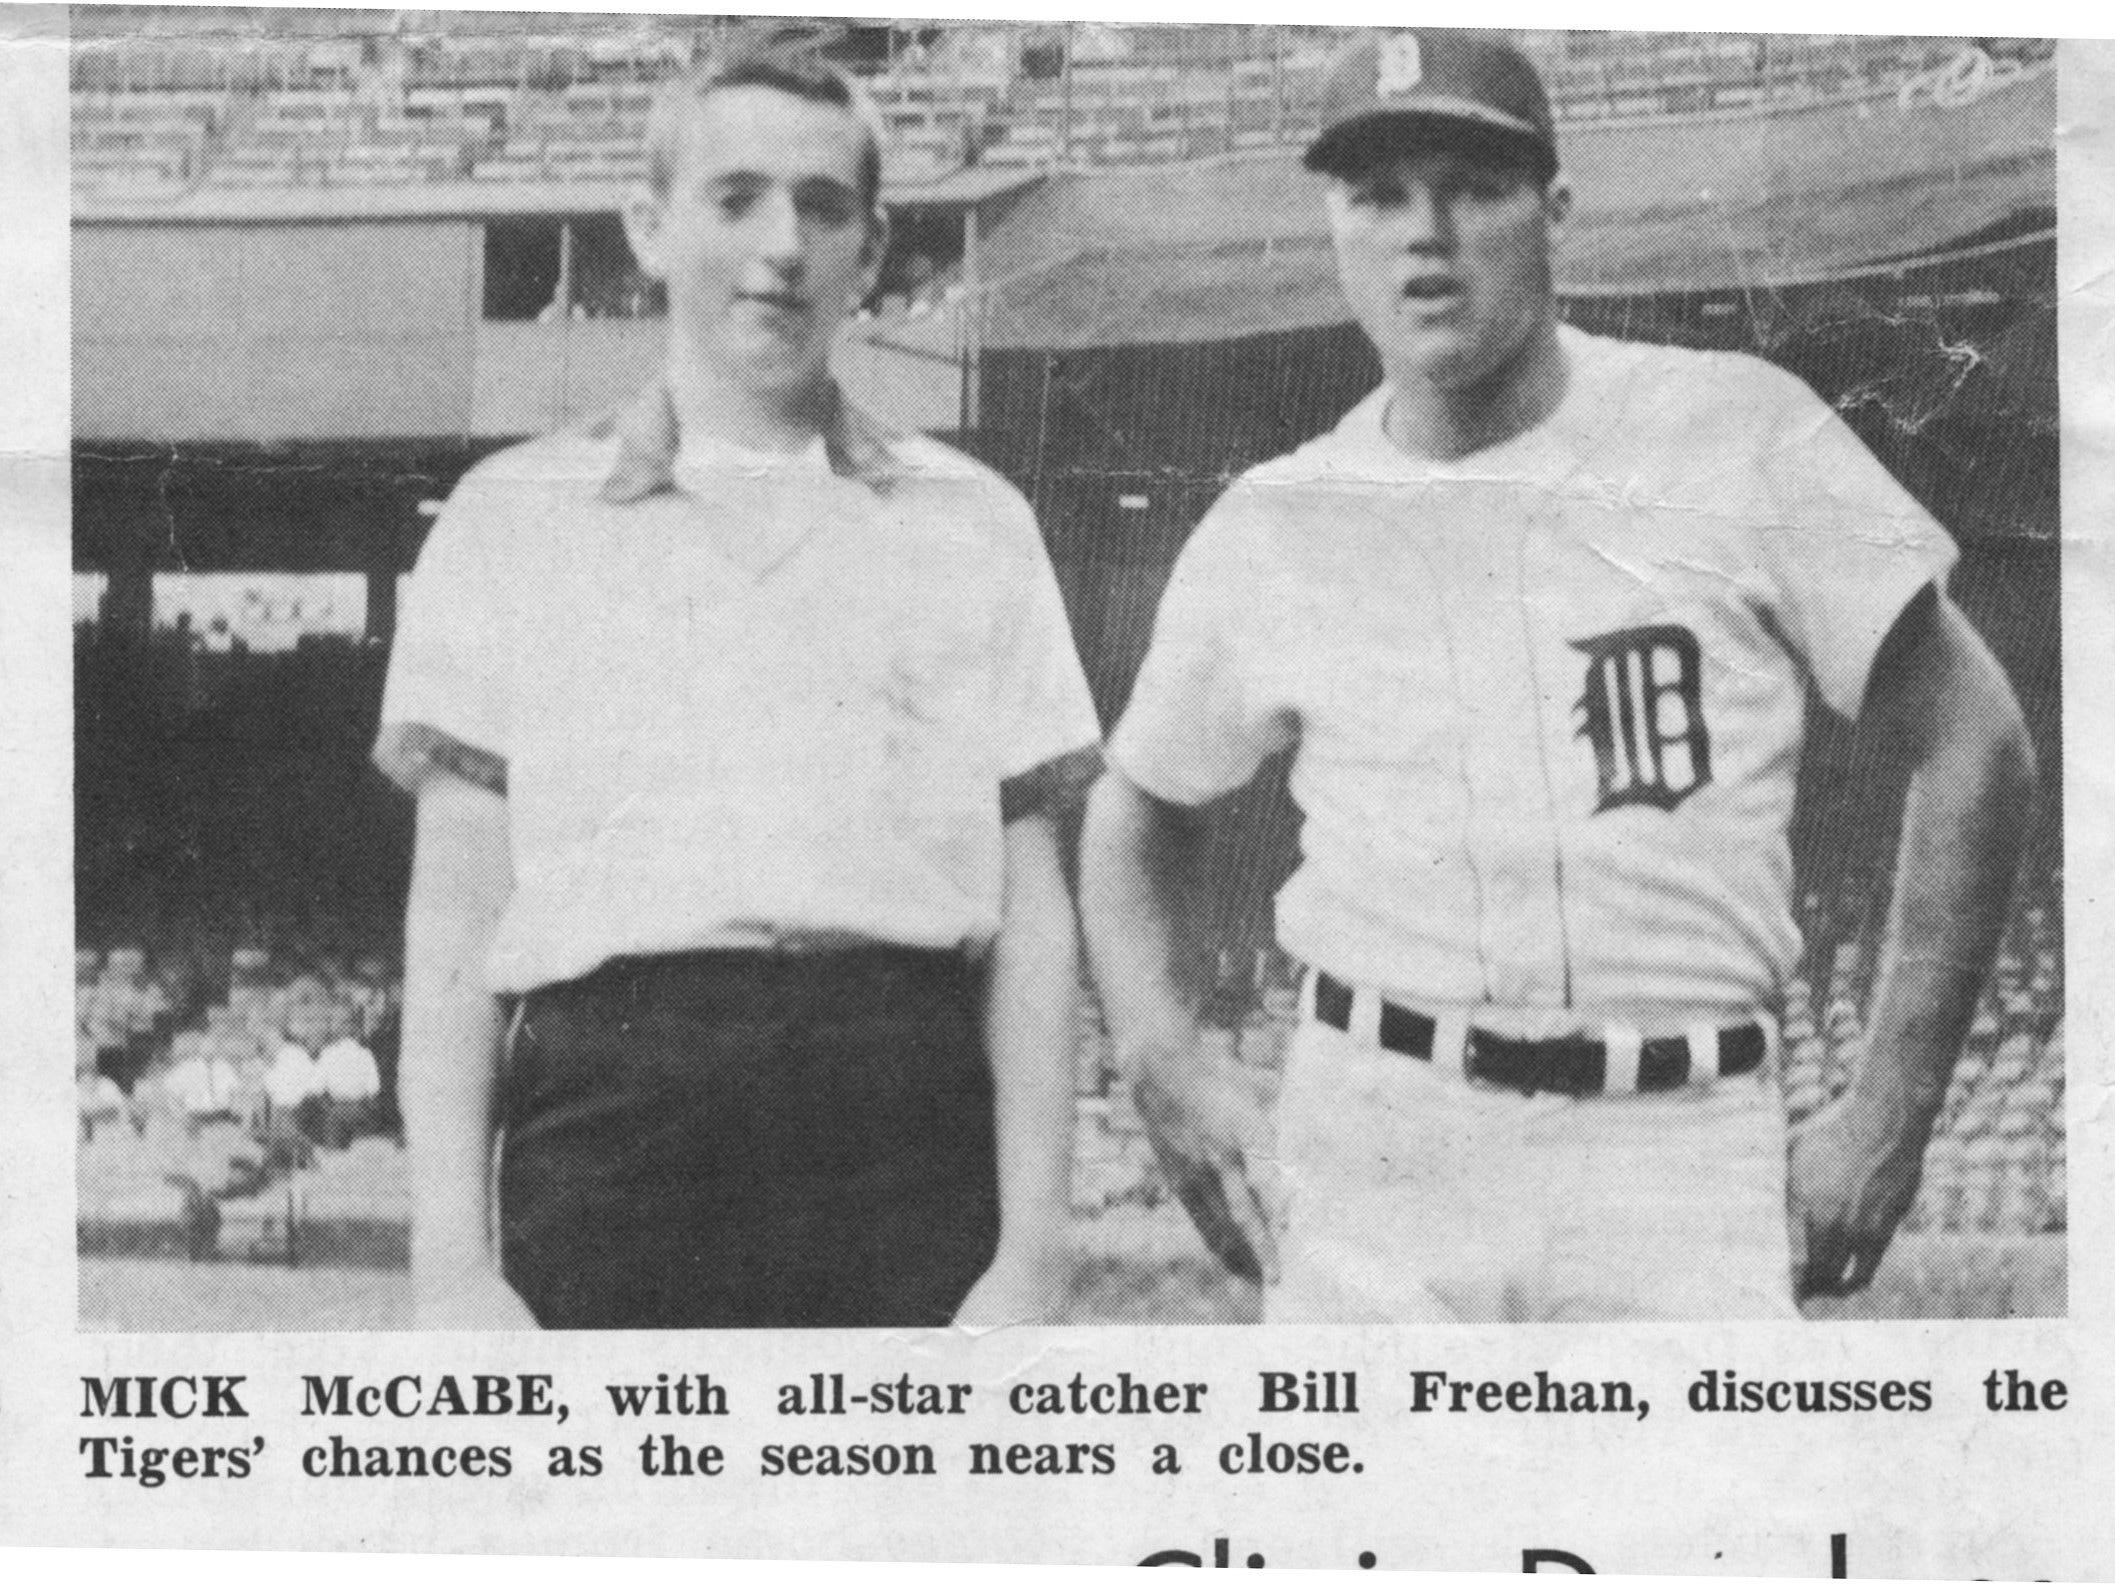 A young Mick McCabe, who had a summer job at Tiger Stadium in the 60's, got to rub elbows with the likes of Bill Freehan. This photo of McCabe and Freehan ran in the Allen Park Cabrini school paper in 1965.